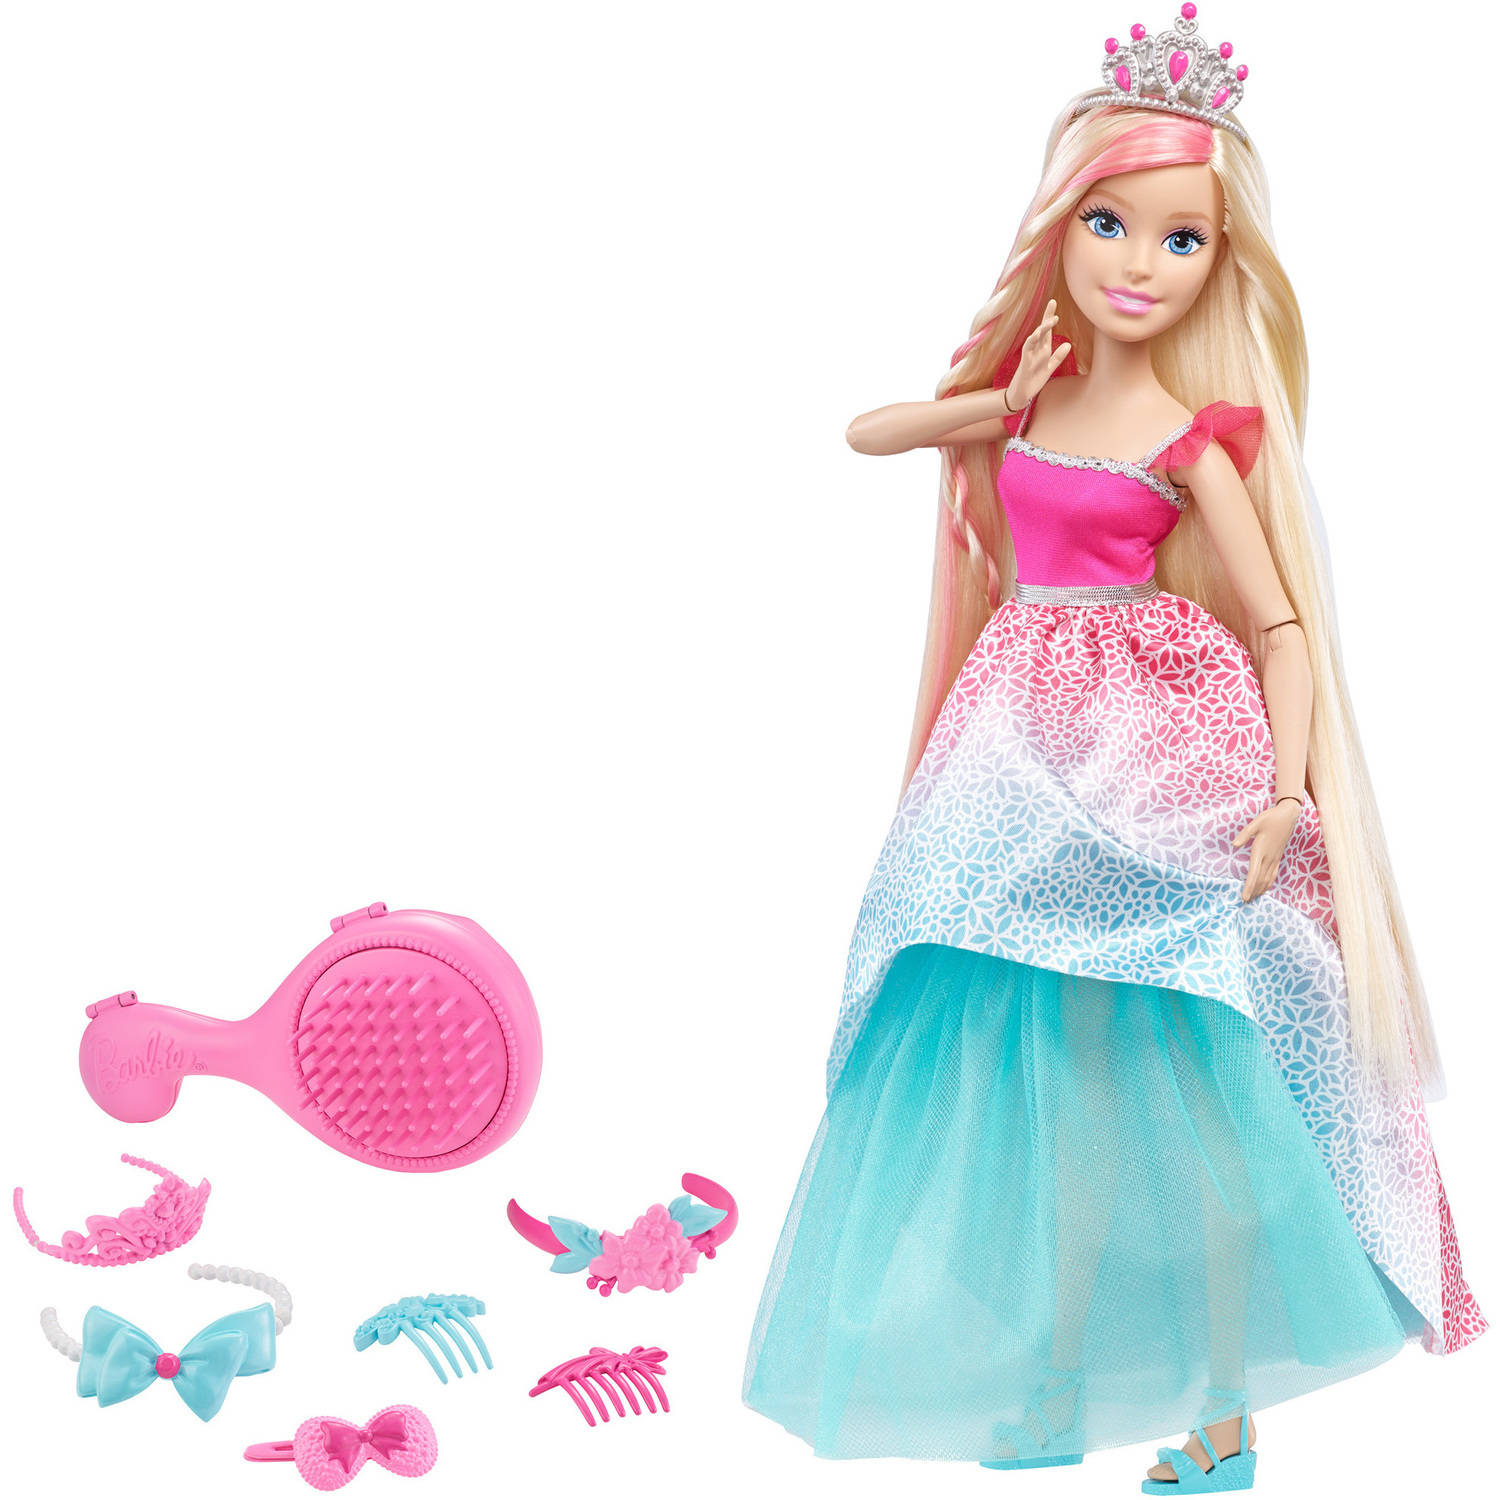 "Barbie Dreamtopia 17"" Princess Doll by MATTEL INC."